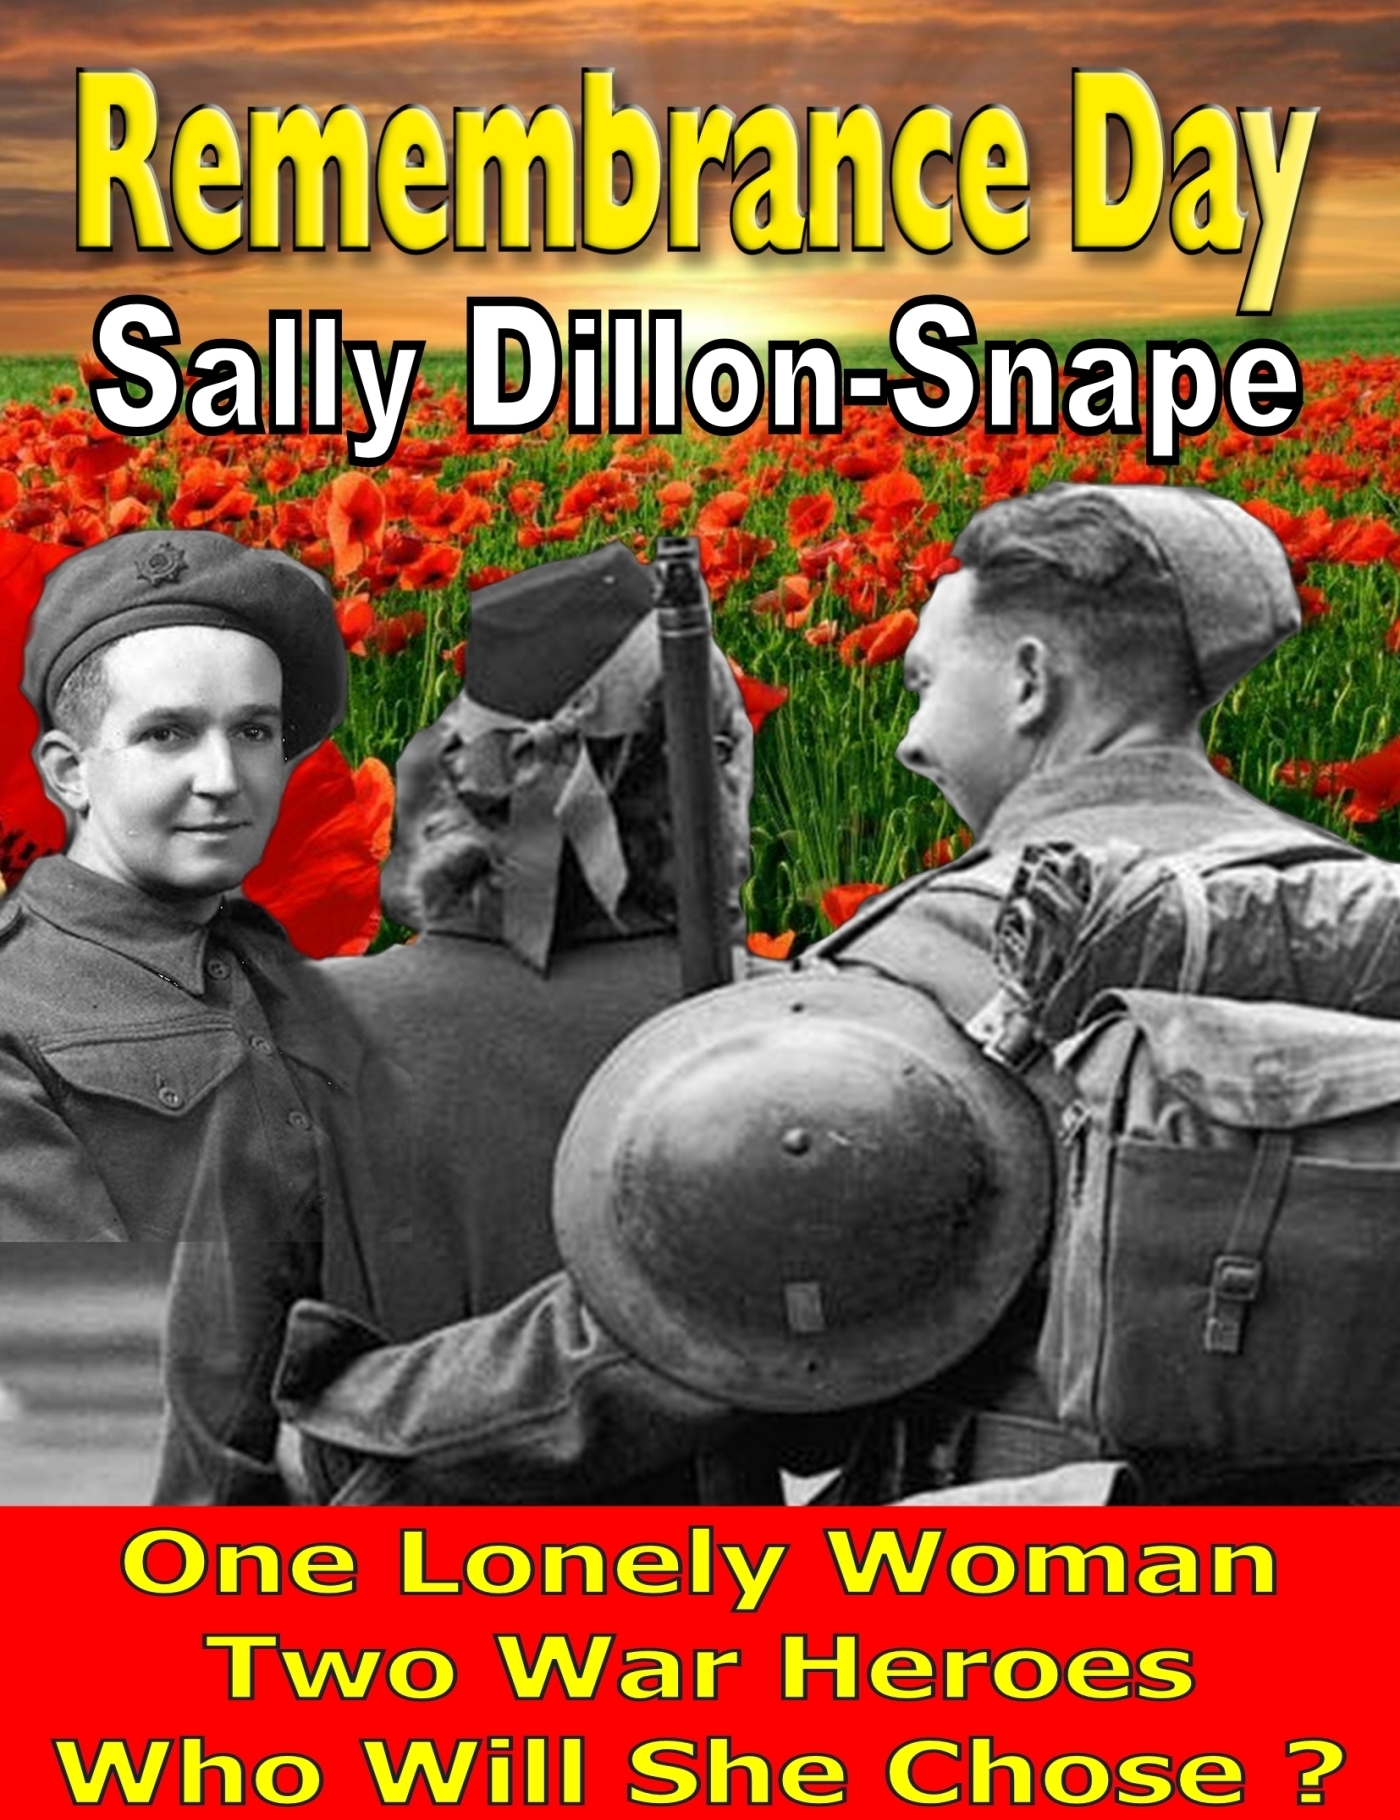 Remembrance Day Sally Dillon-Snape